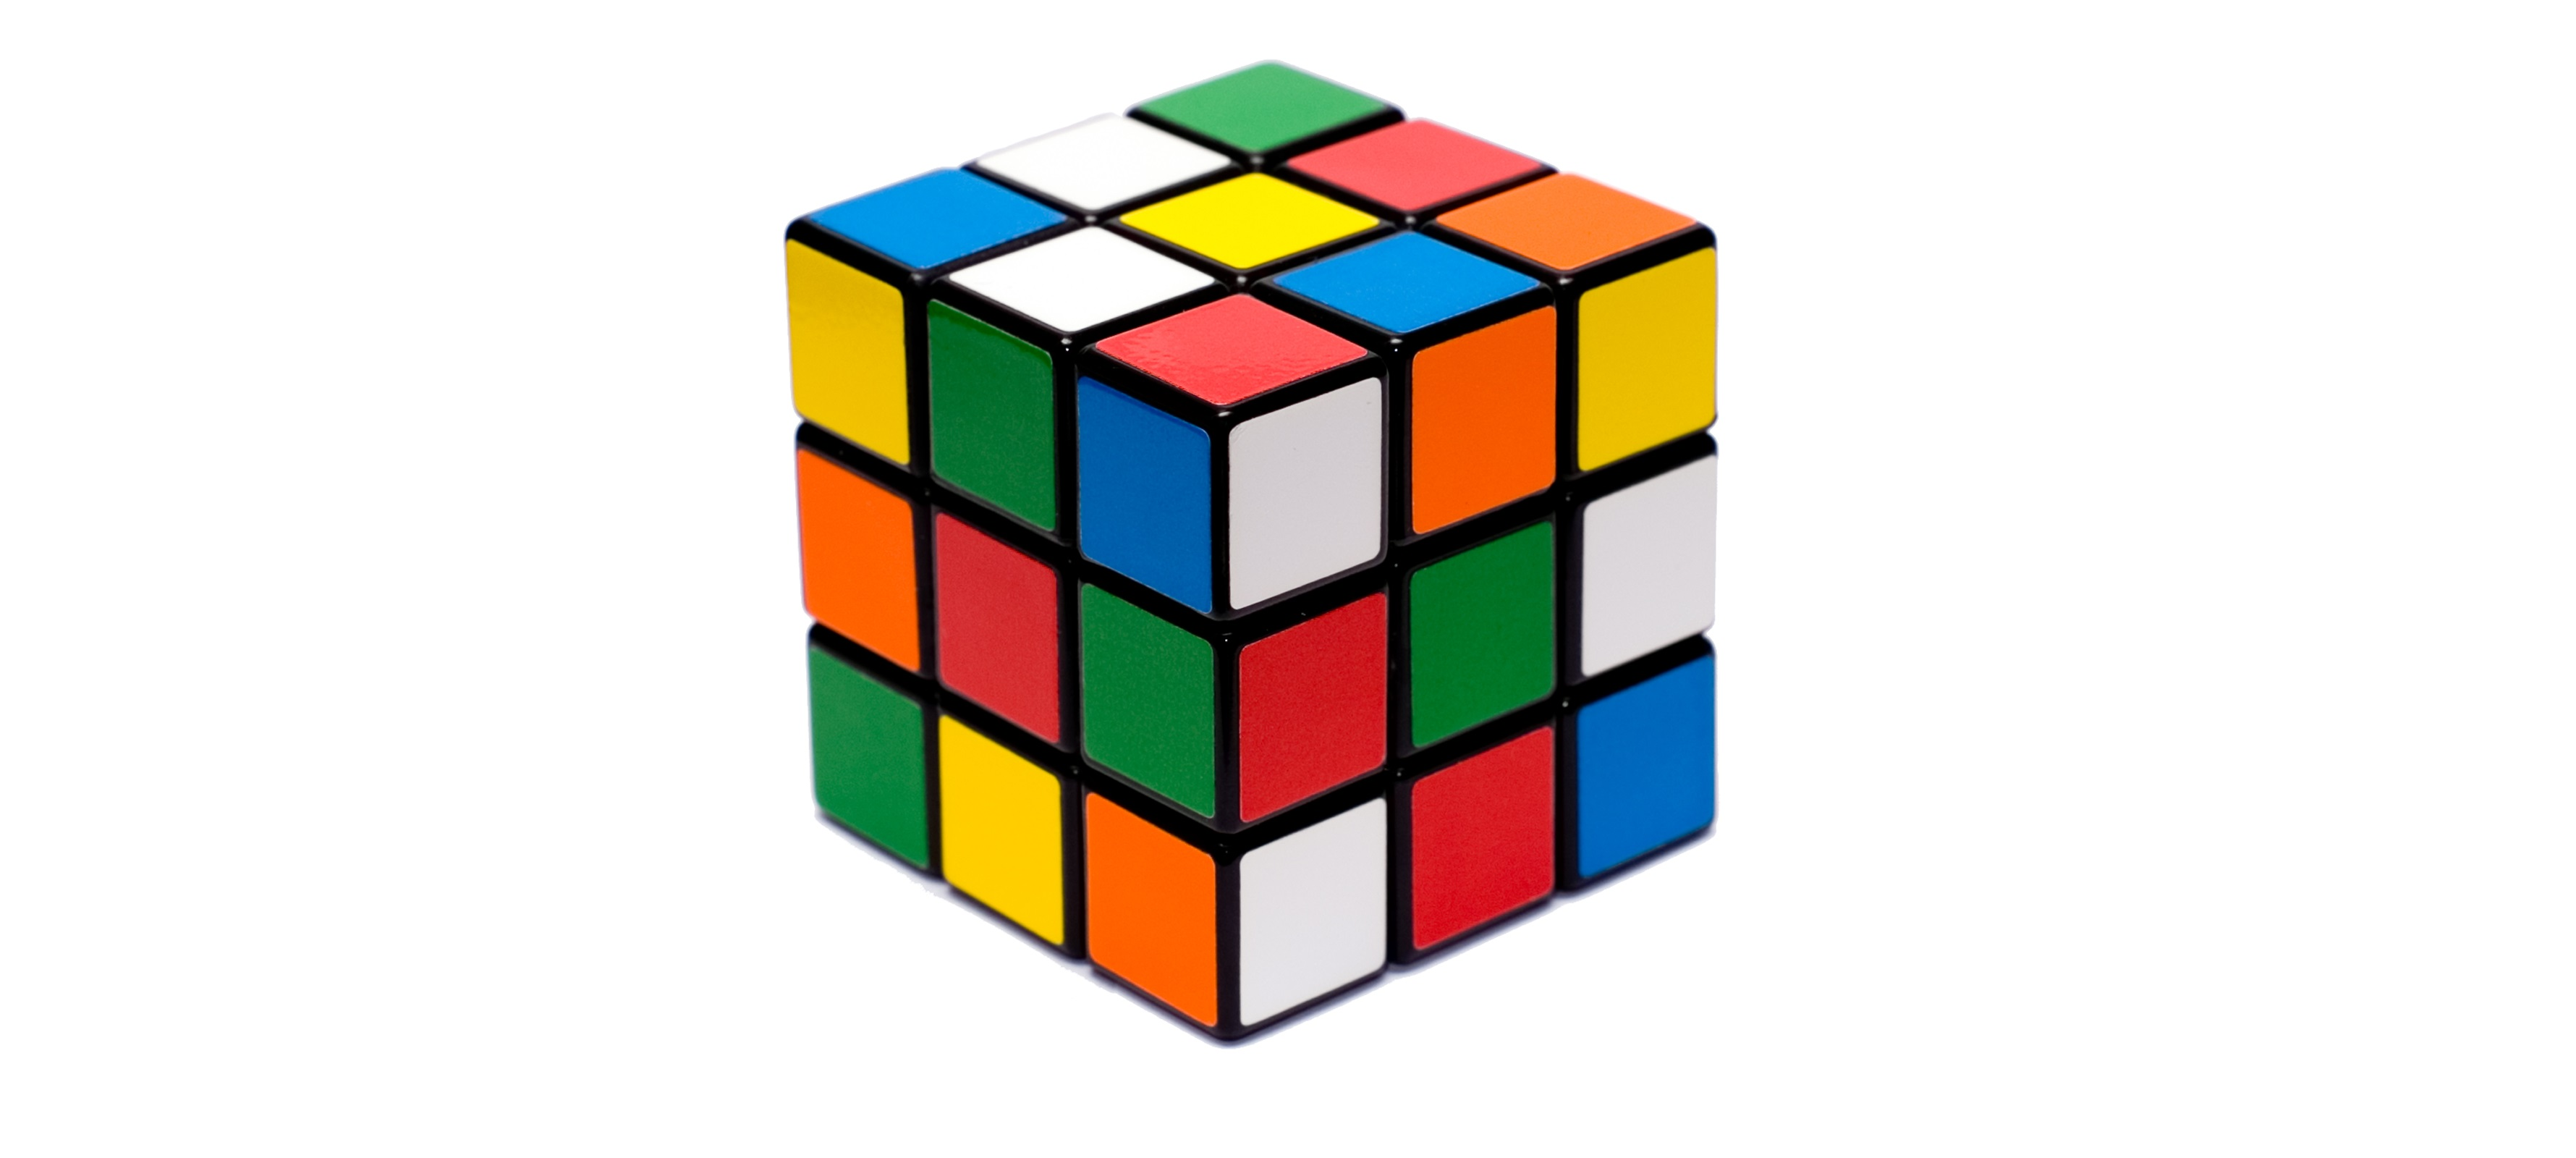 HQ Rubik's Cube Wallpapers | File 363.19Kb